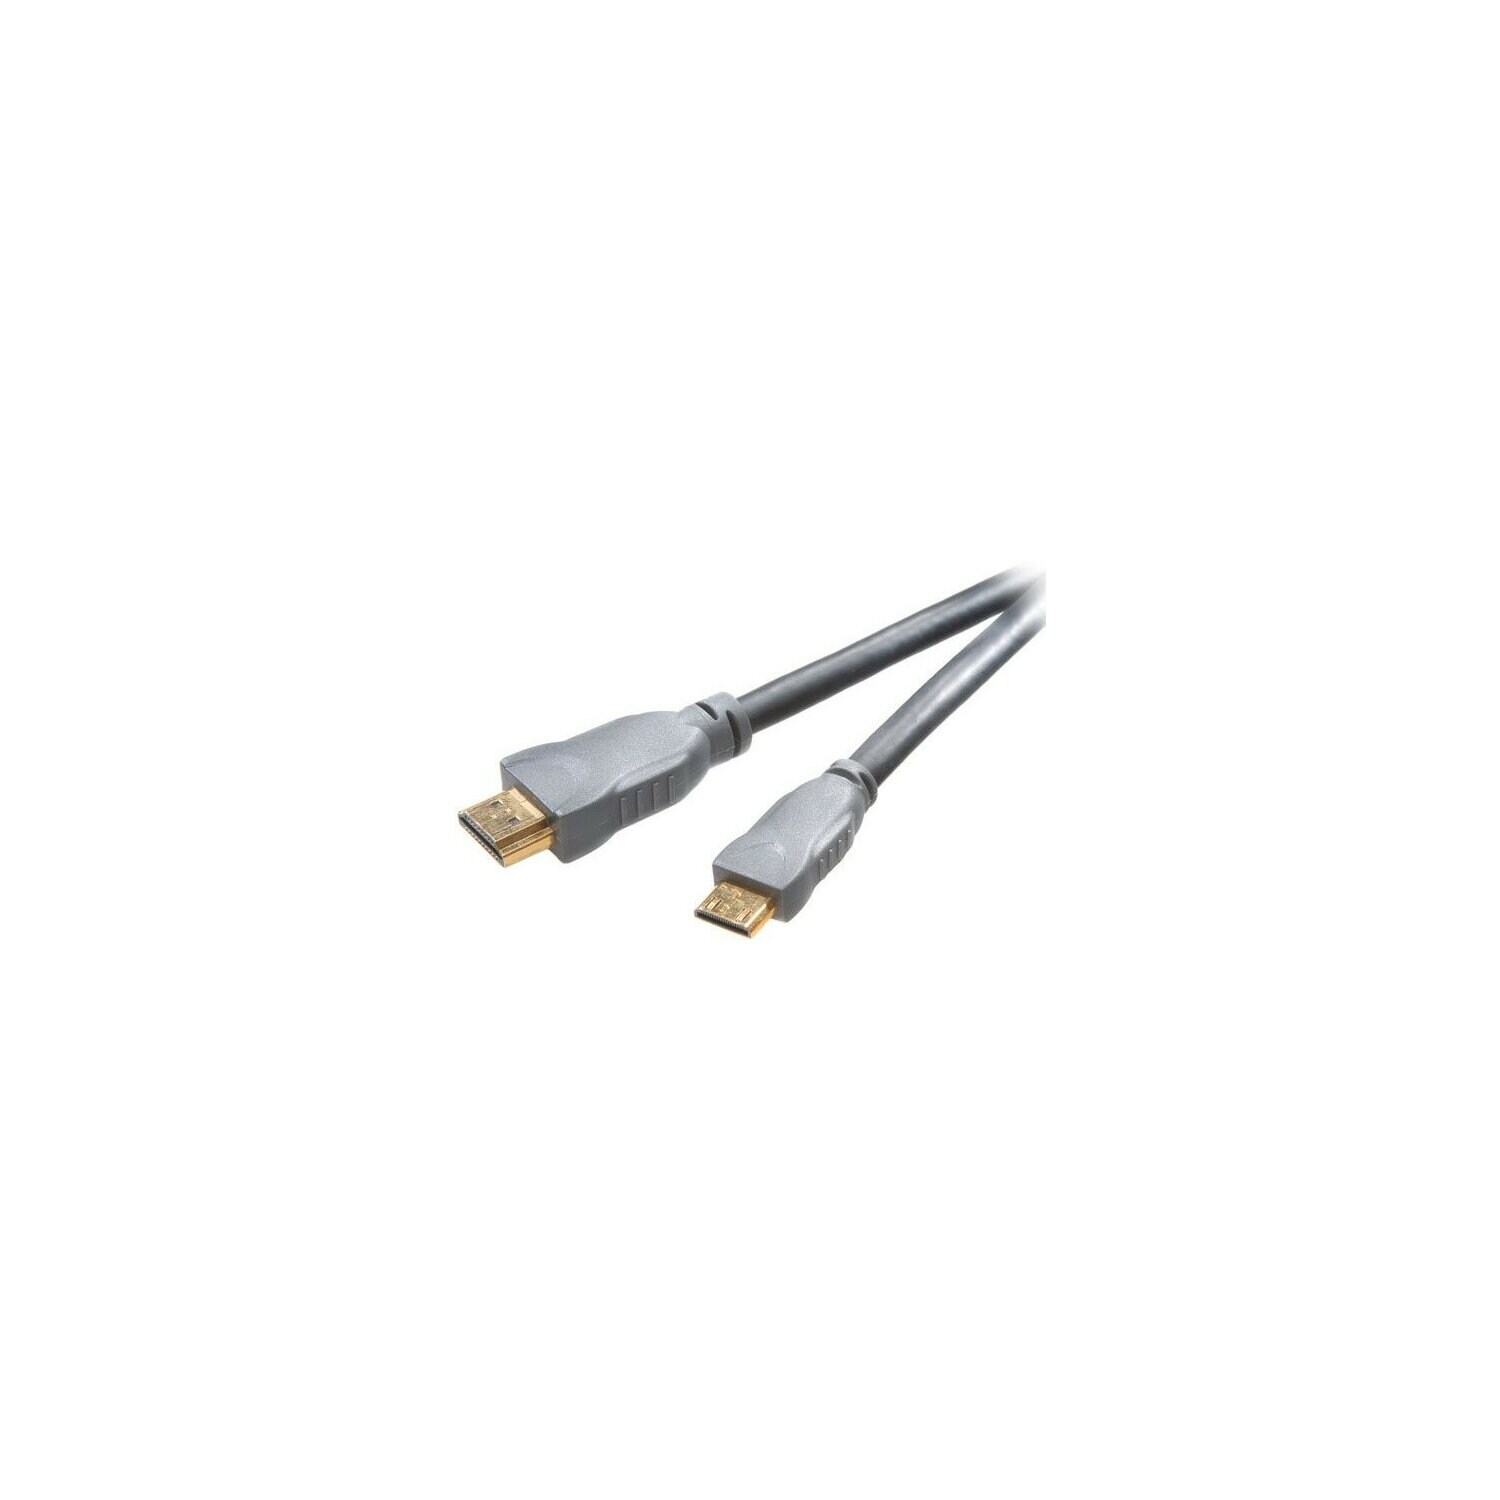 Kabel VIVANCO HDMI - miniHDMI 1.5 m Szary